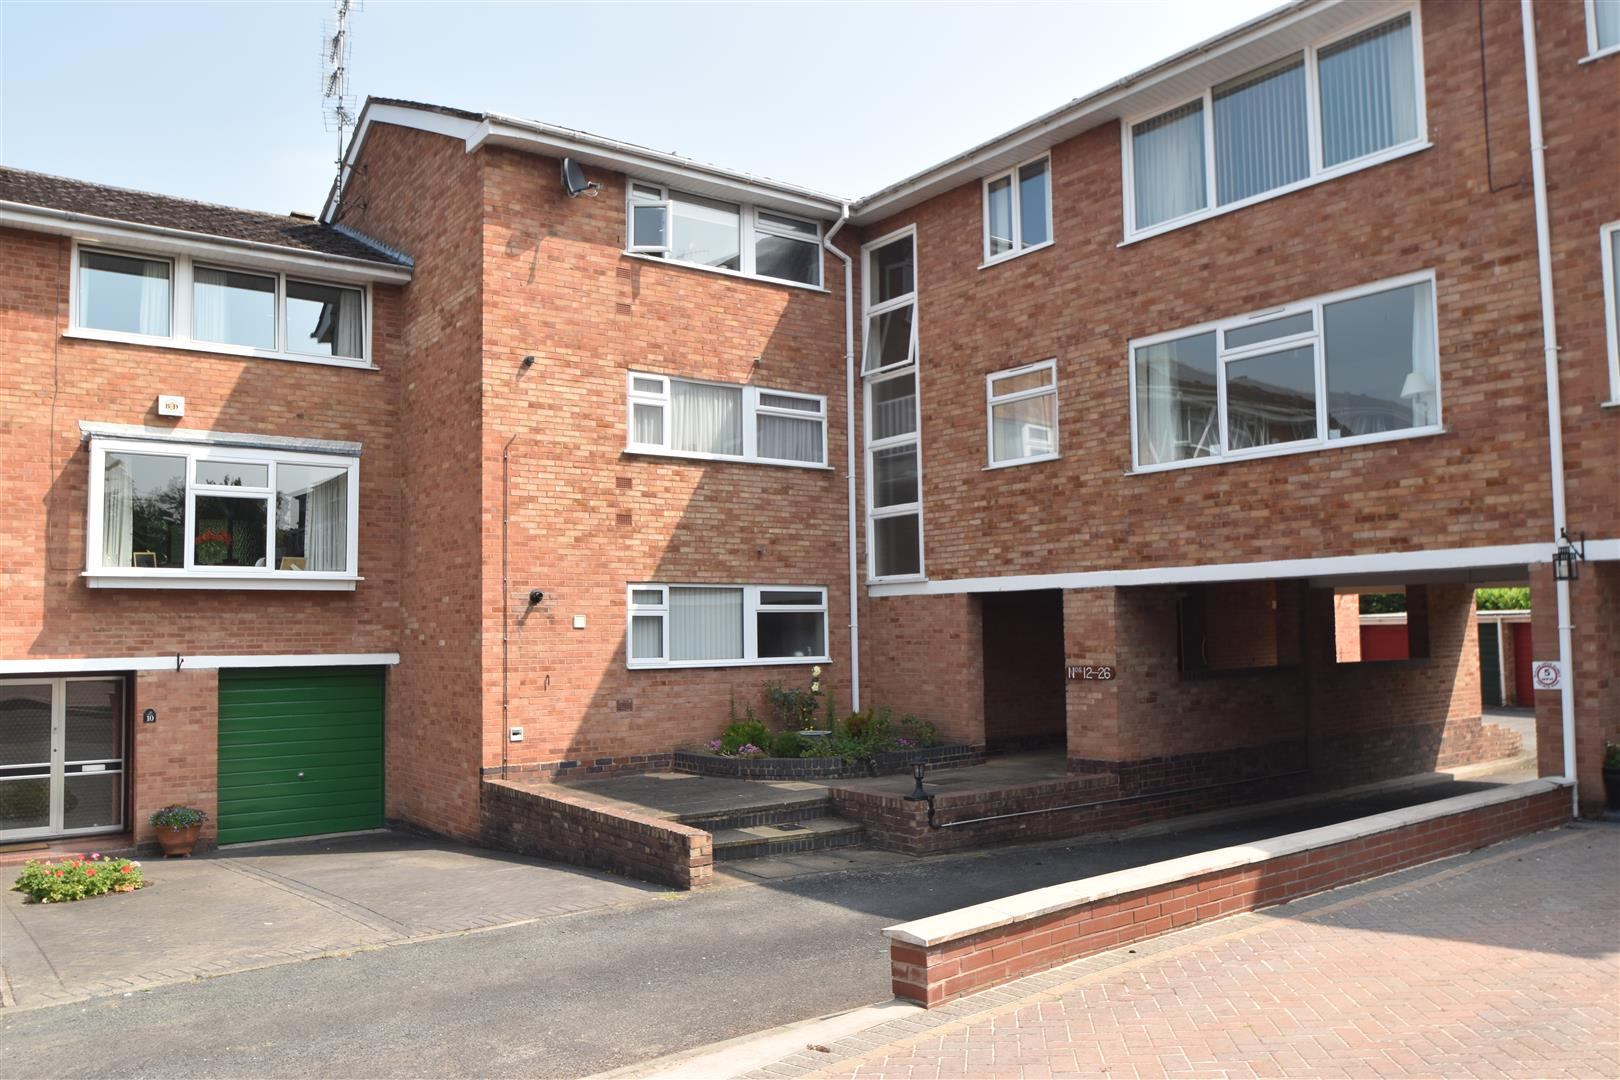 2 Bedrooms Flat for sale in Wedgberrow Close, Droitwich Spa